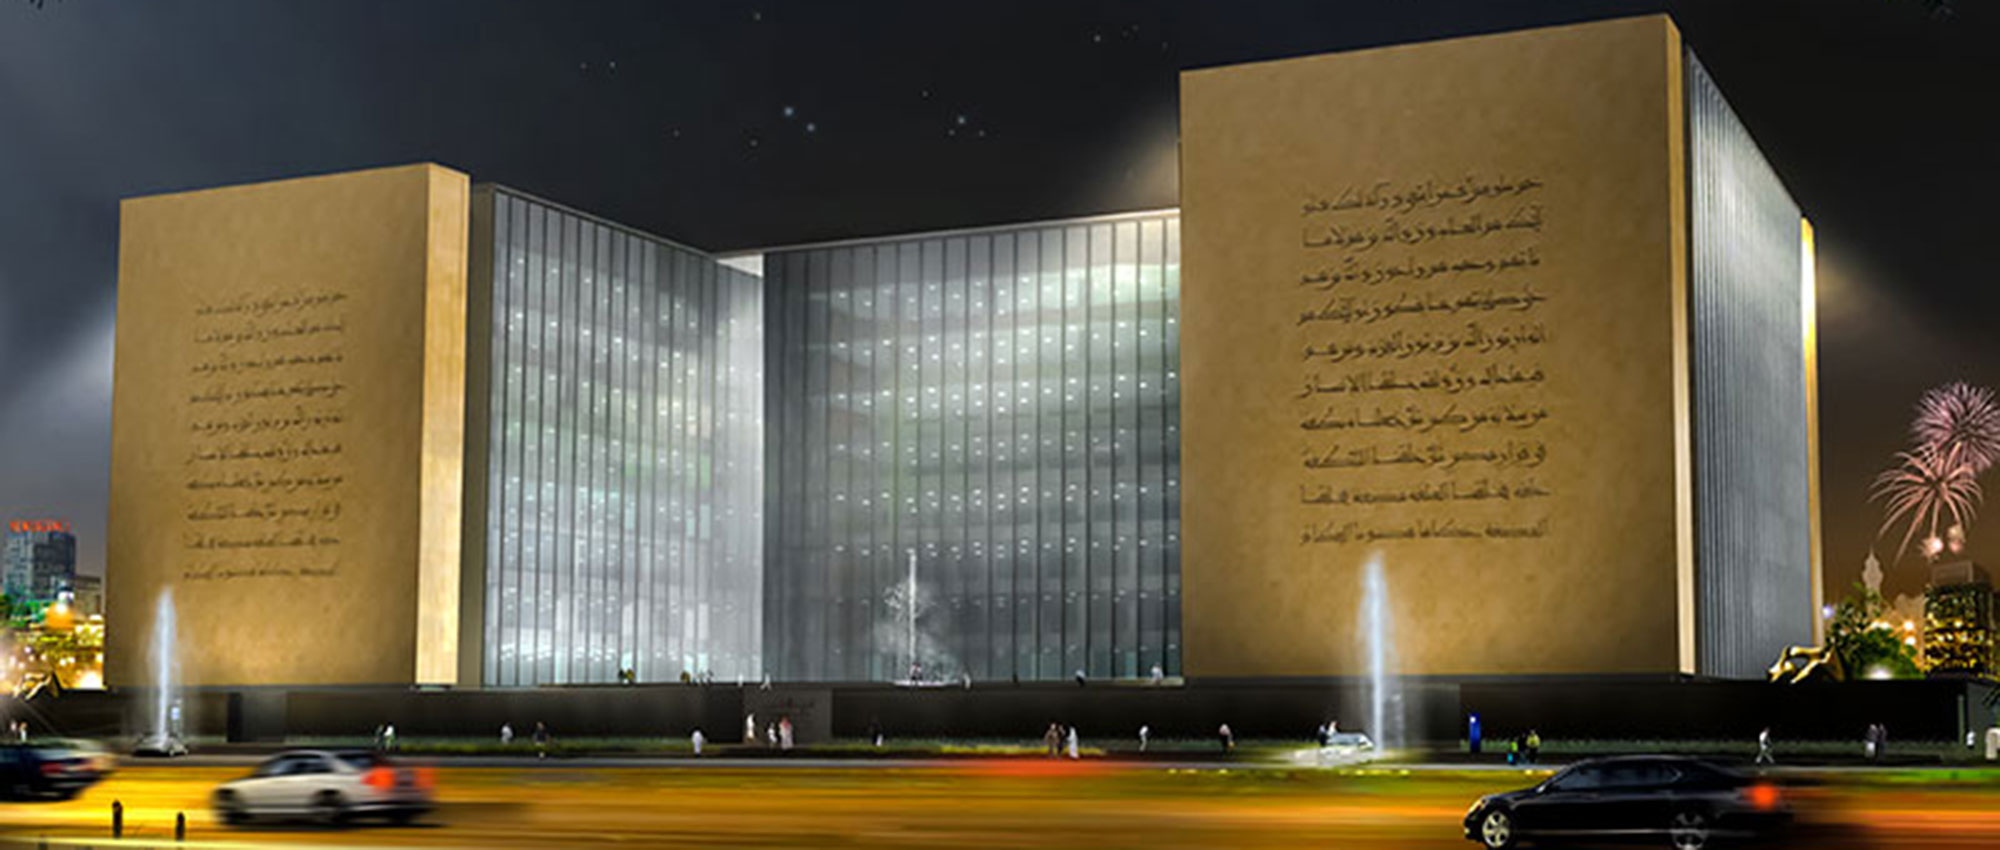 King Abdulaziz Center For National Dialogue